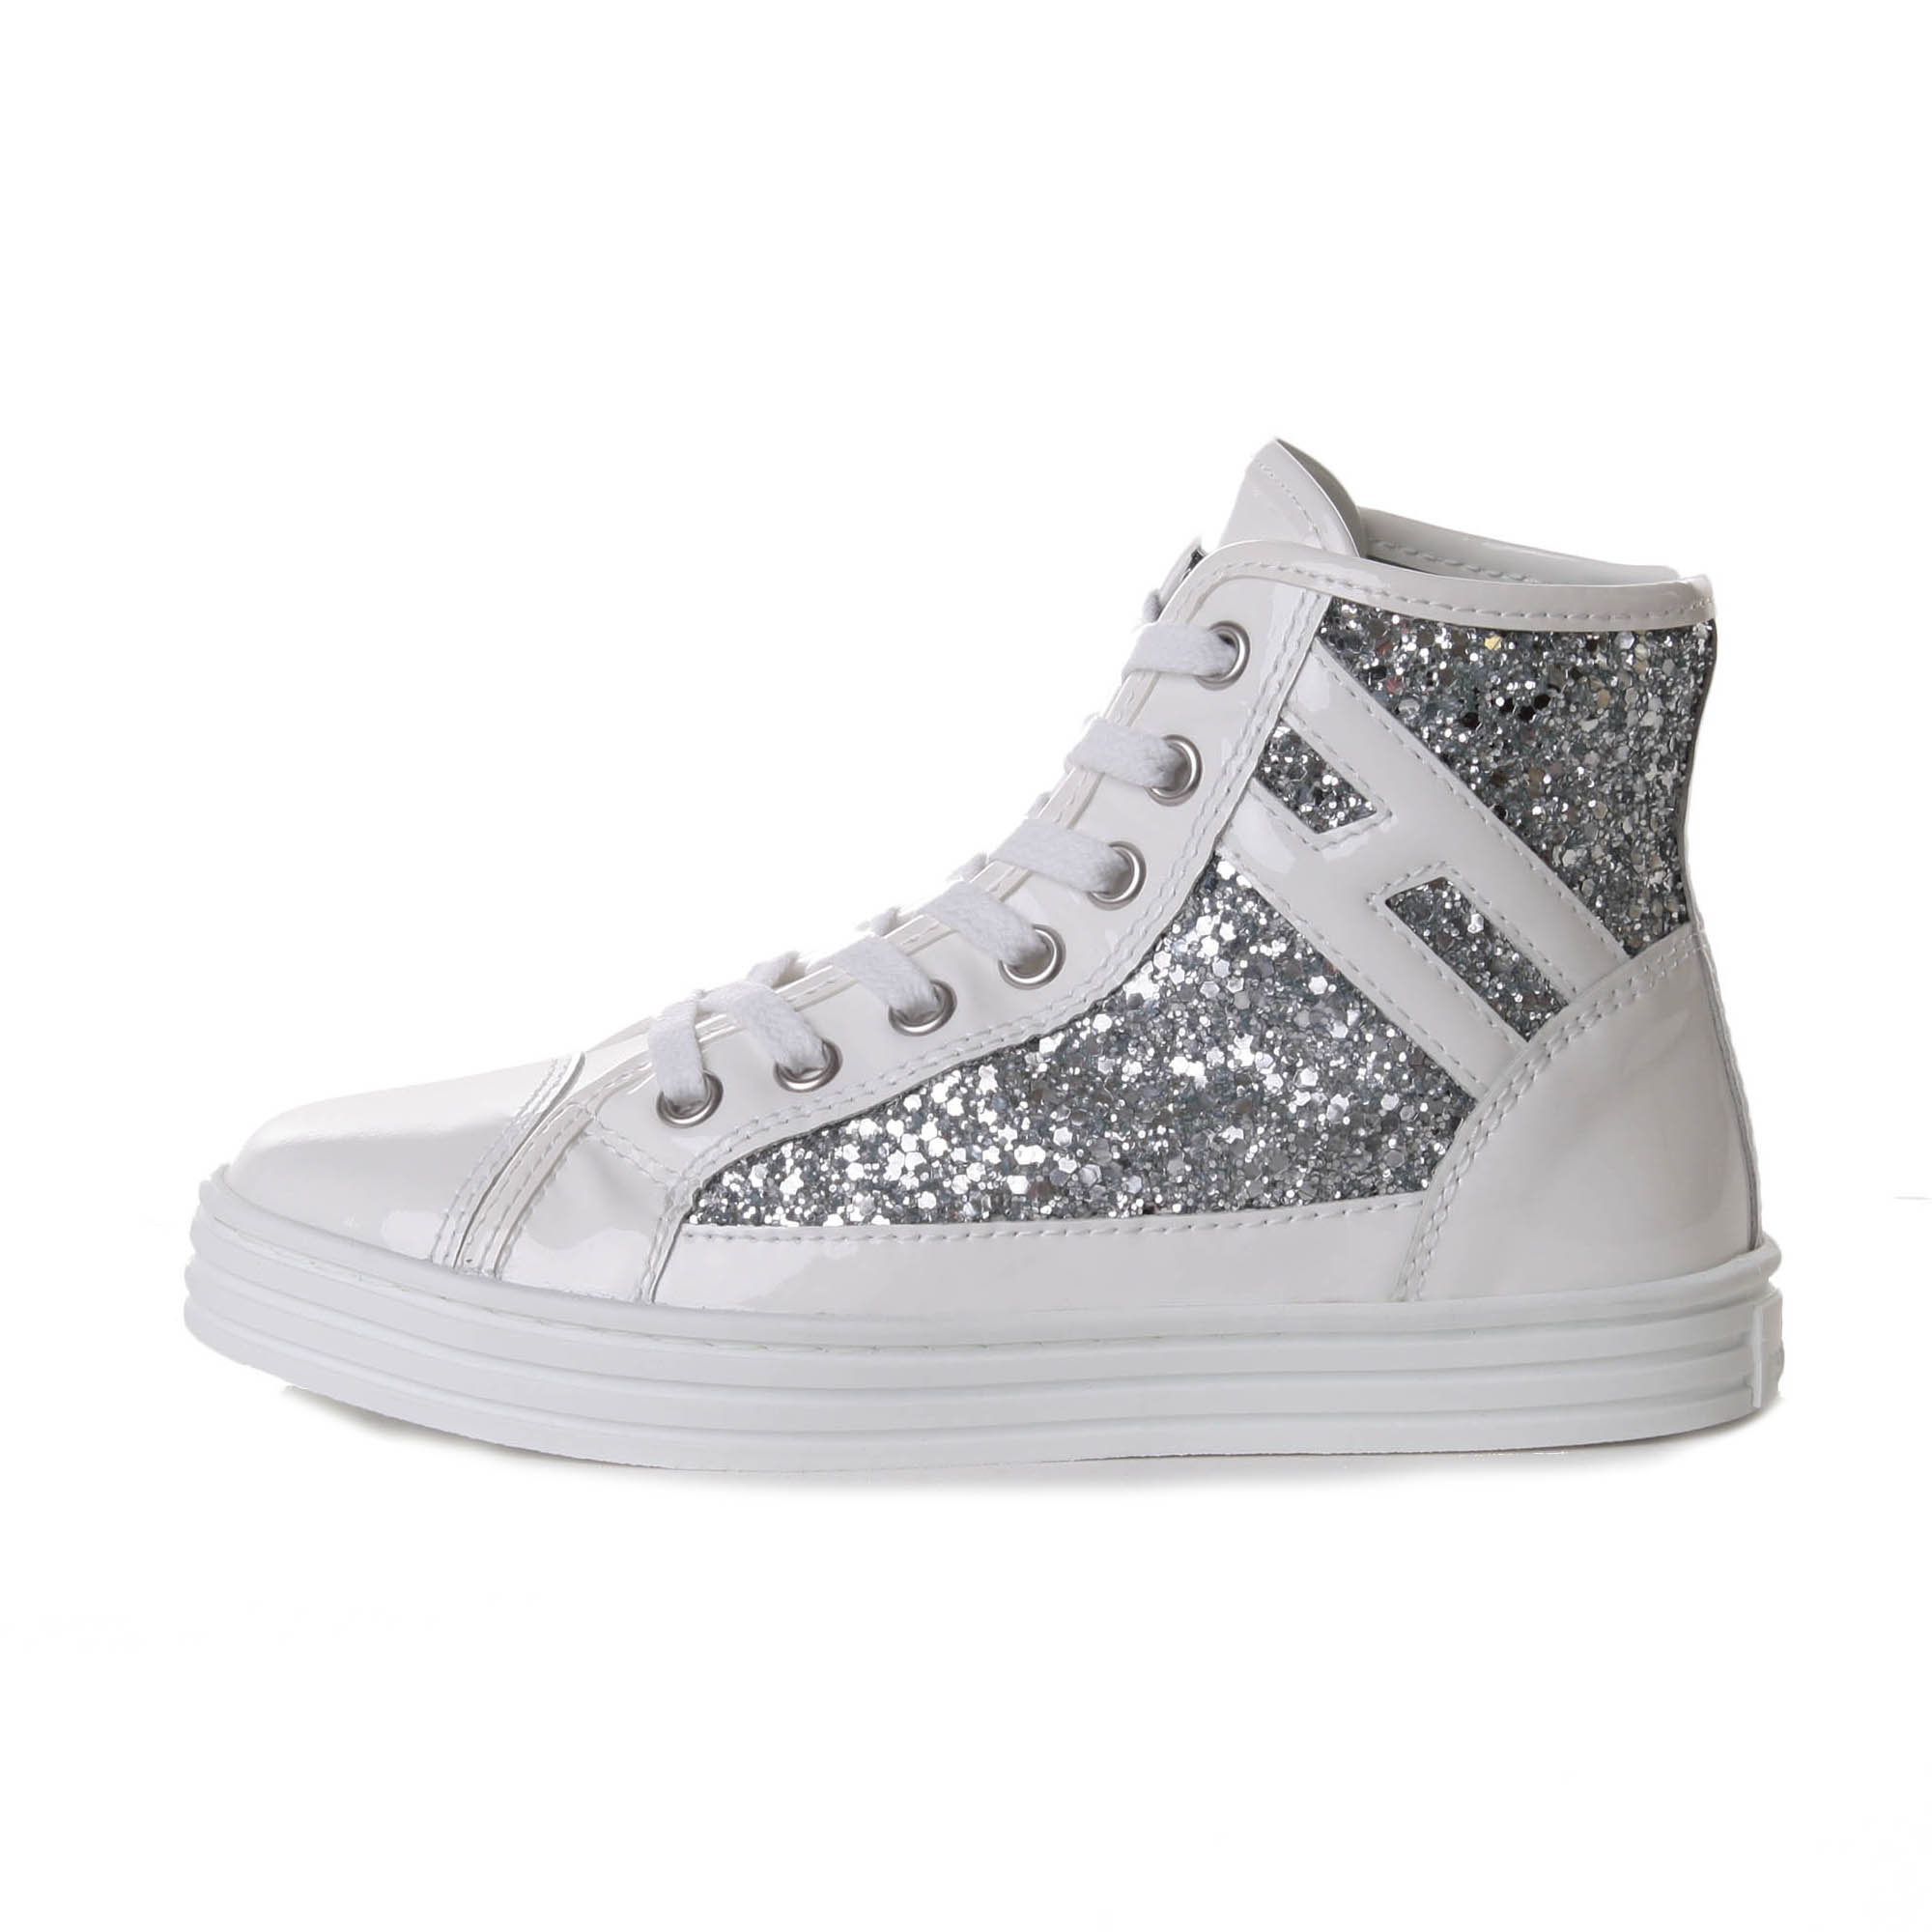 Alta qualit Sneakers Hogan Rebel Glitter vendita